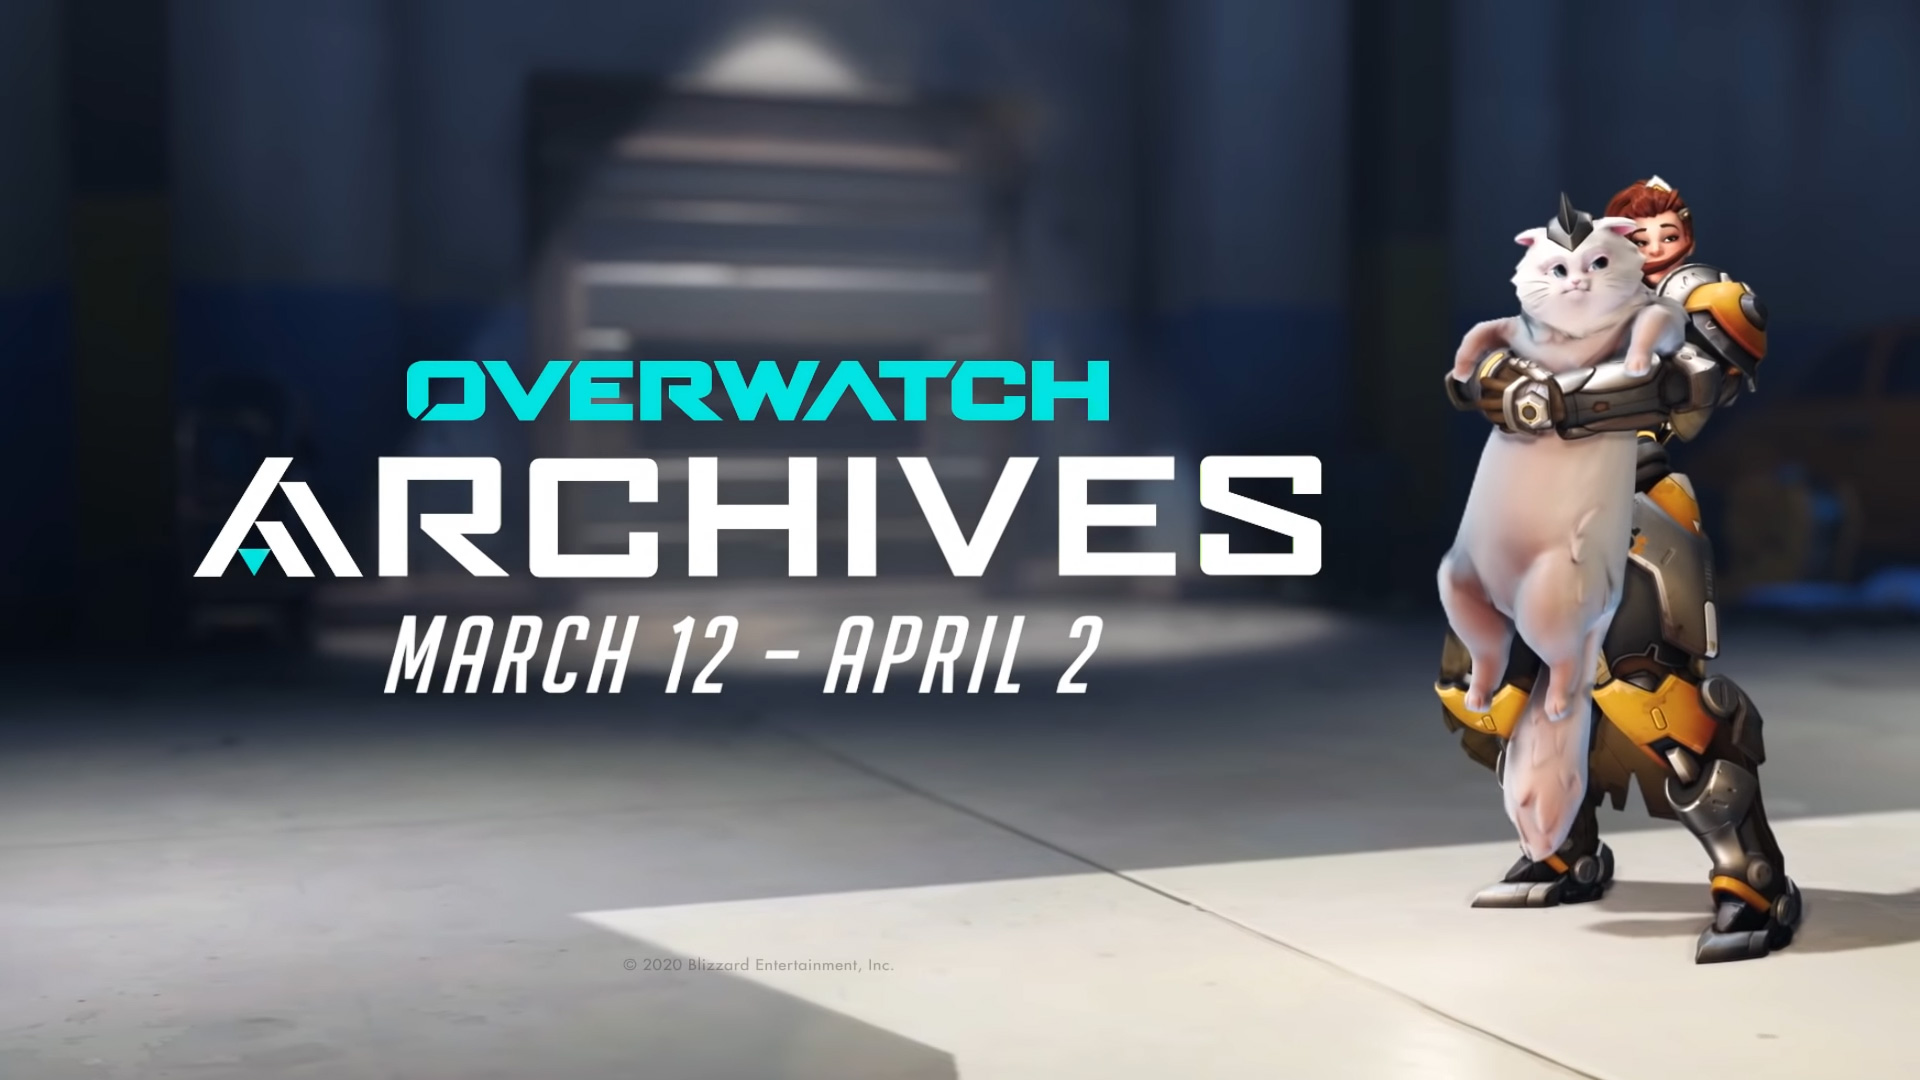 Overwatch Archives 2020 has eight skins and a Jetpack Cat shout-out screenshot